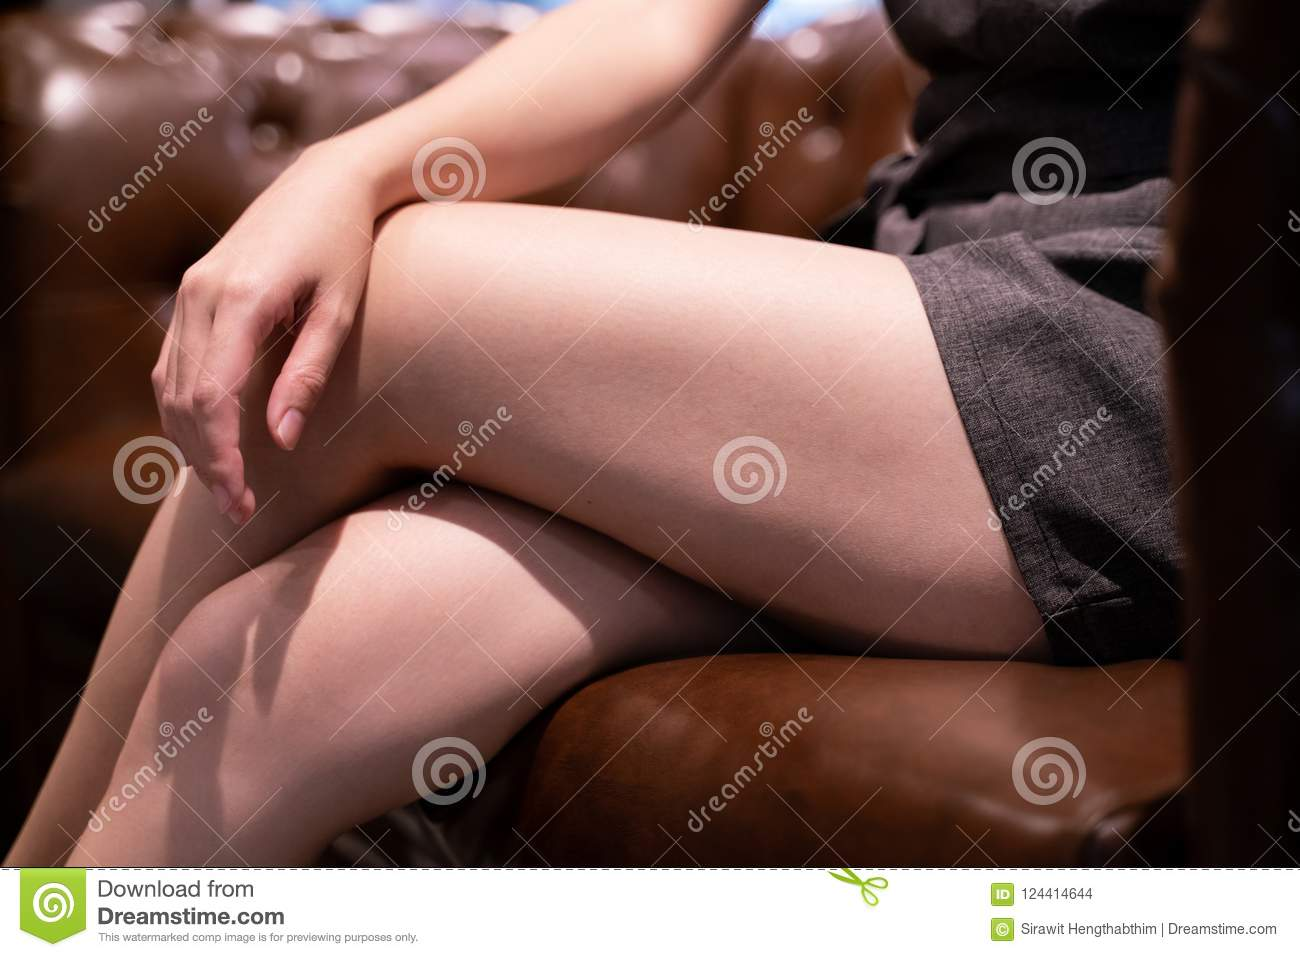 A when woman it legs her crosses what does mean Body Language